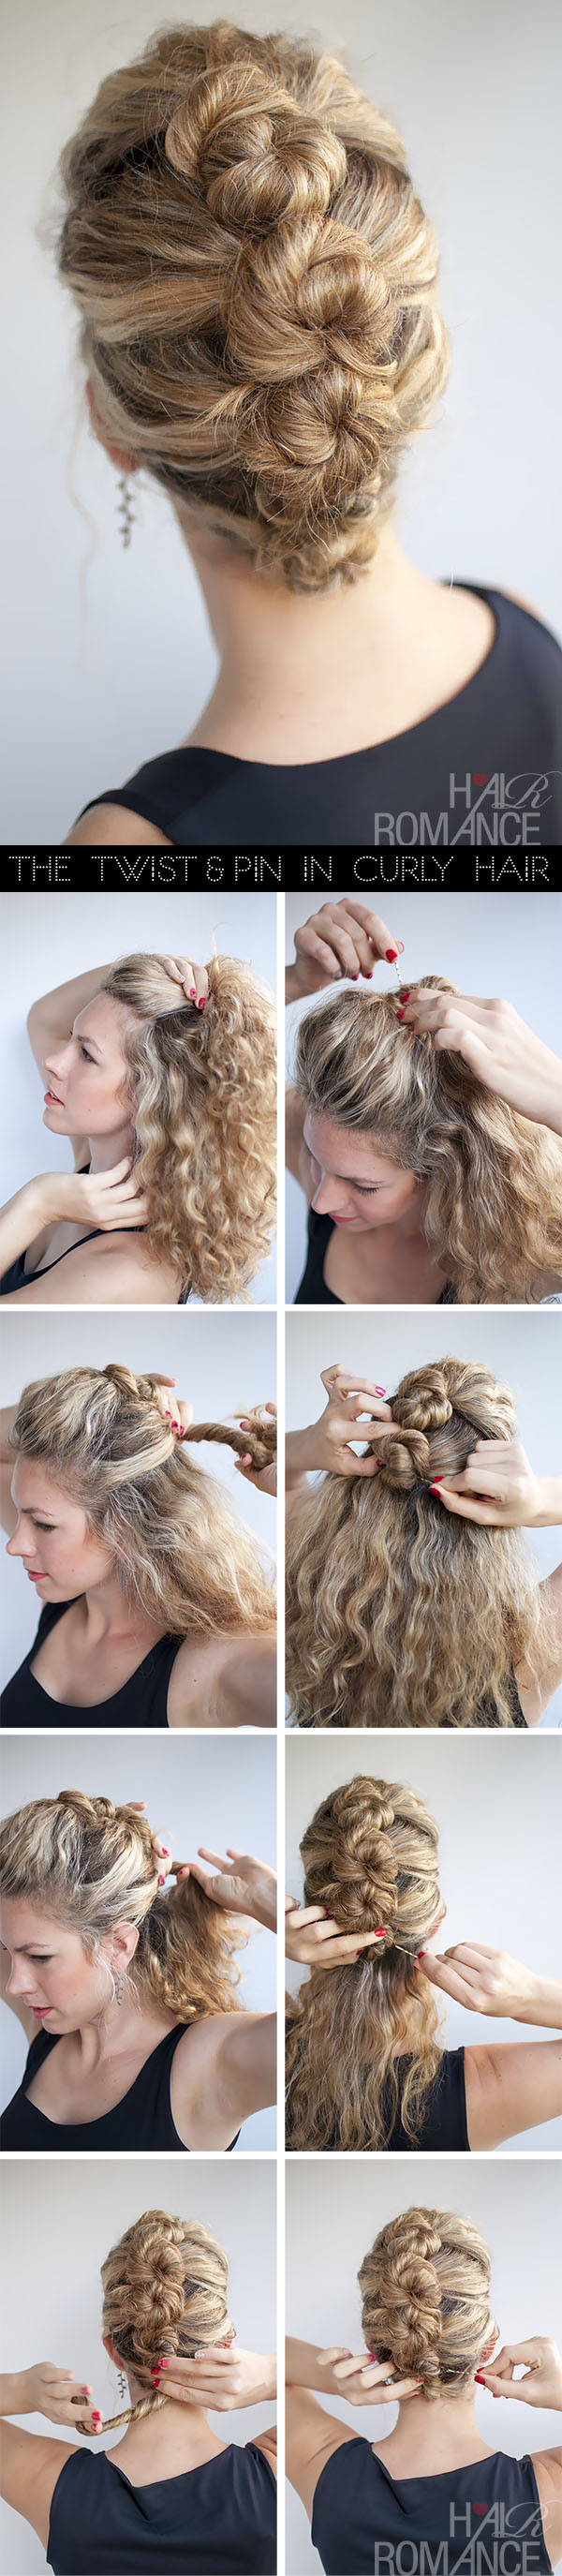 Hair-Romance-hairstyle-tutorial-The-French-Twist-and-Pin-in-curly-hair ...